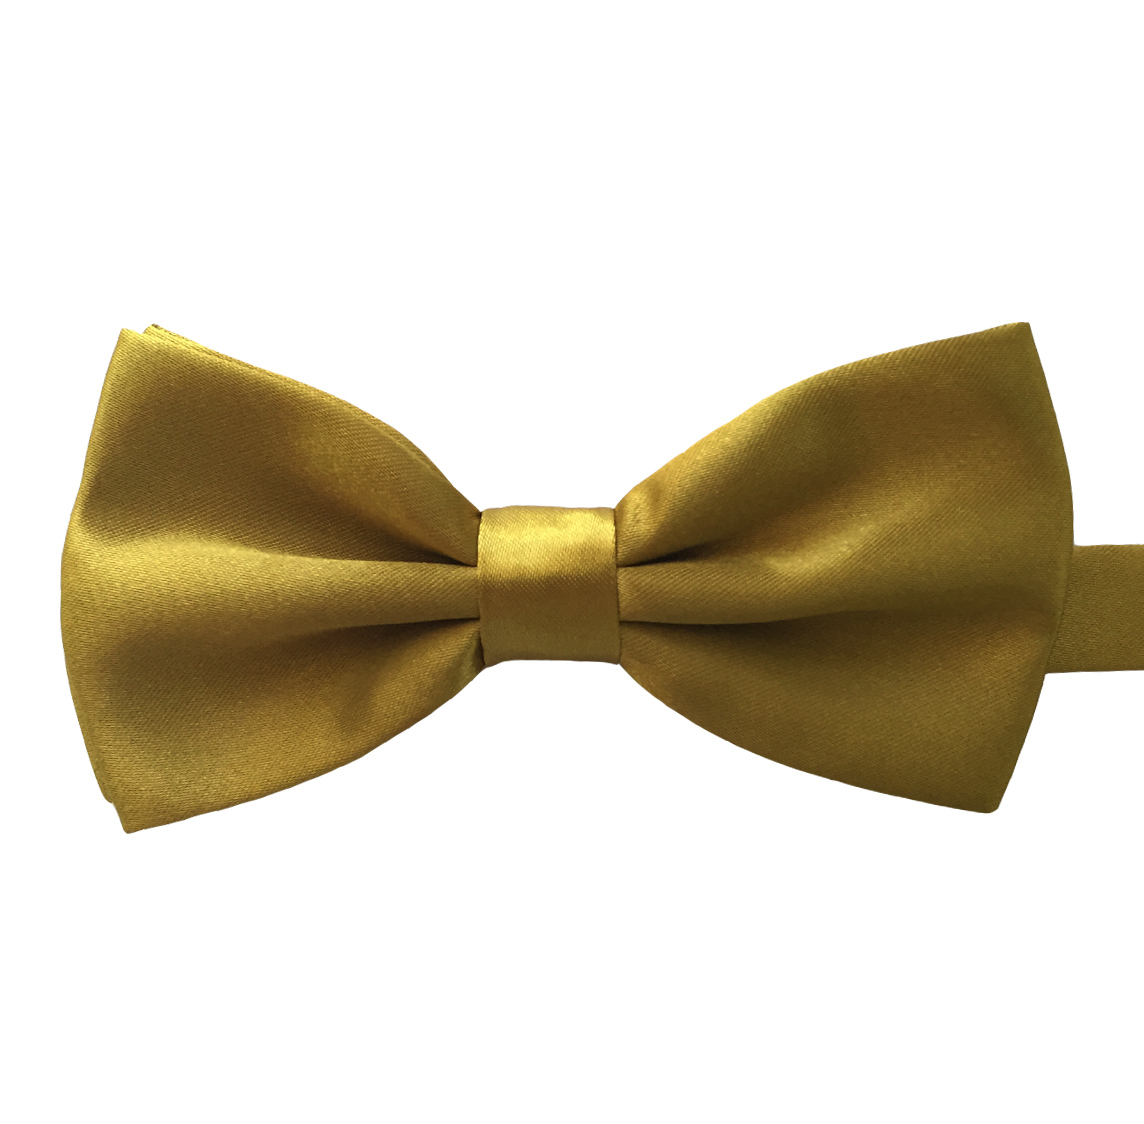 Buttered Rum Gold Bow Tie  The Tie Rack Australia